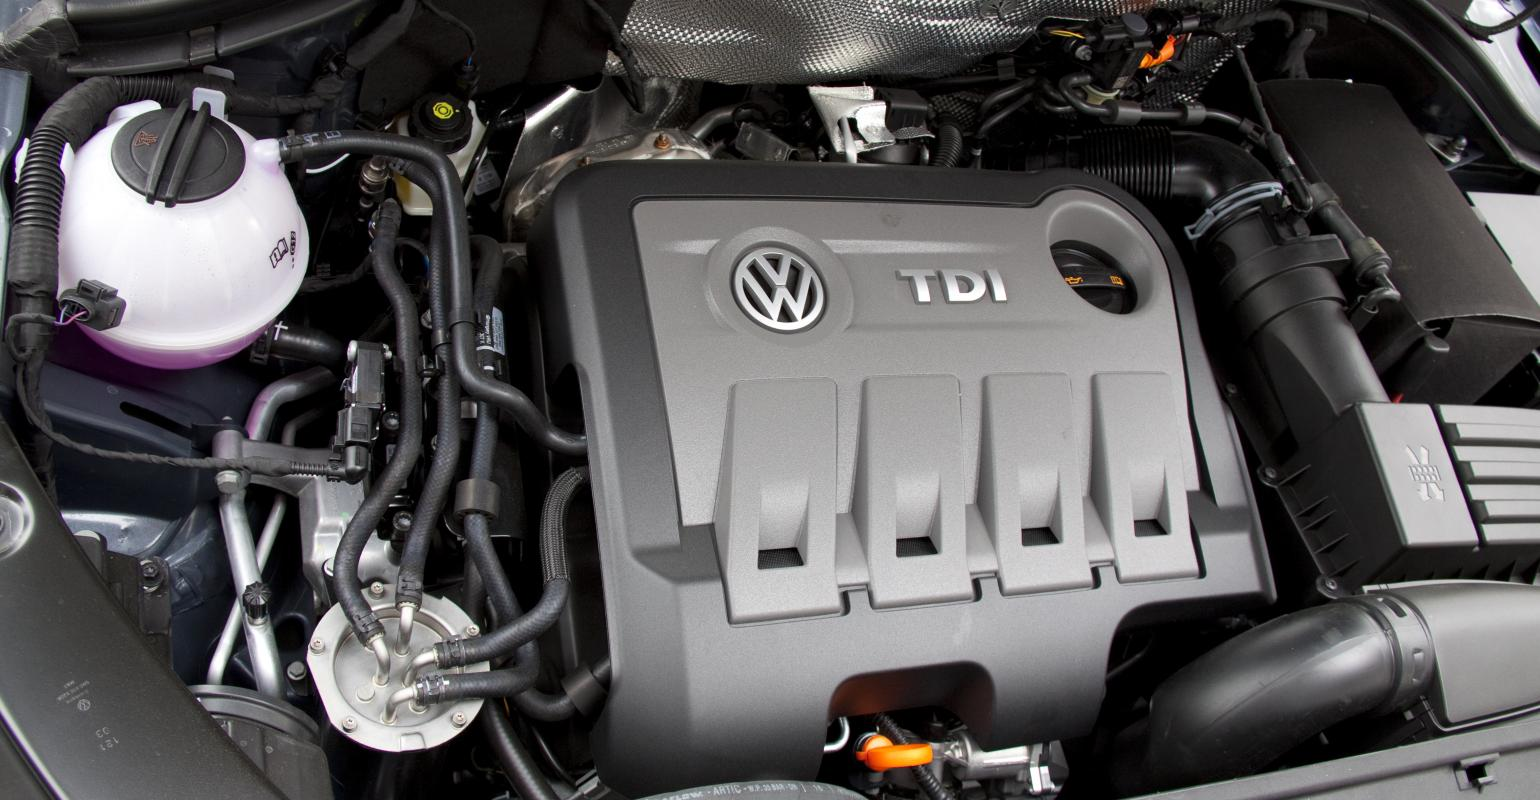 VW Korea   Germany-Based Emissions Monitor Appears Before